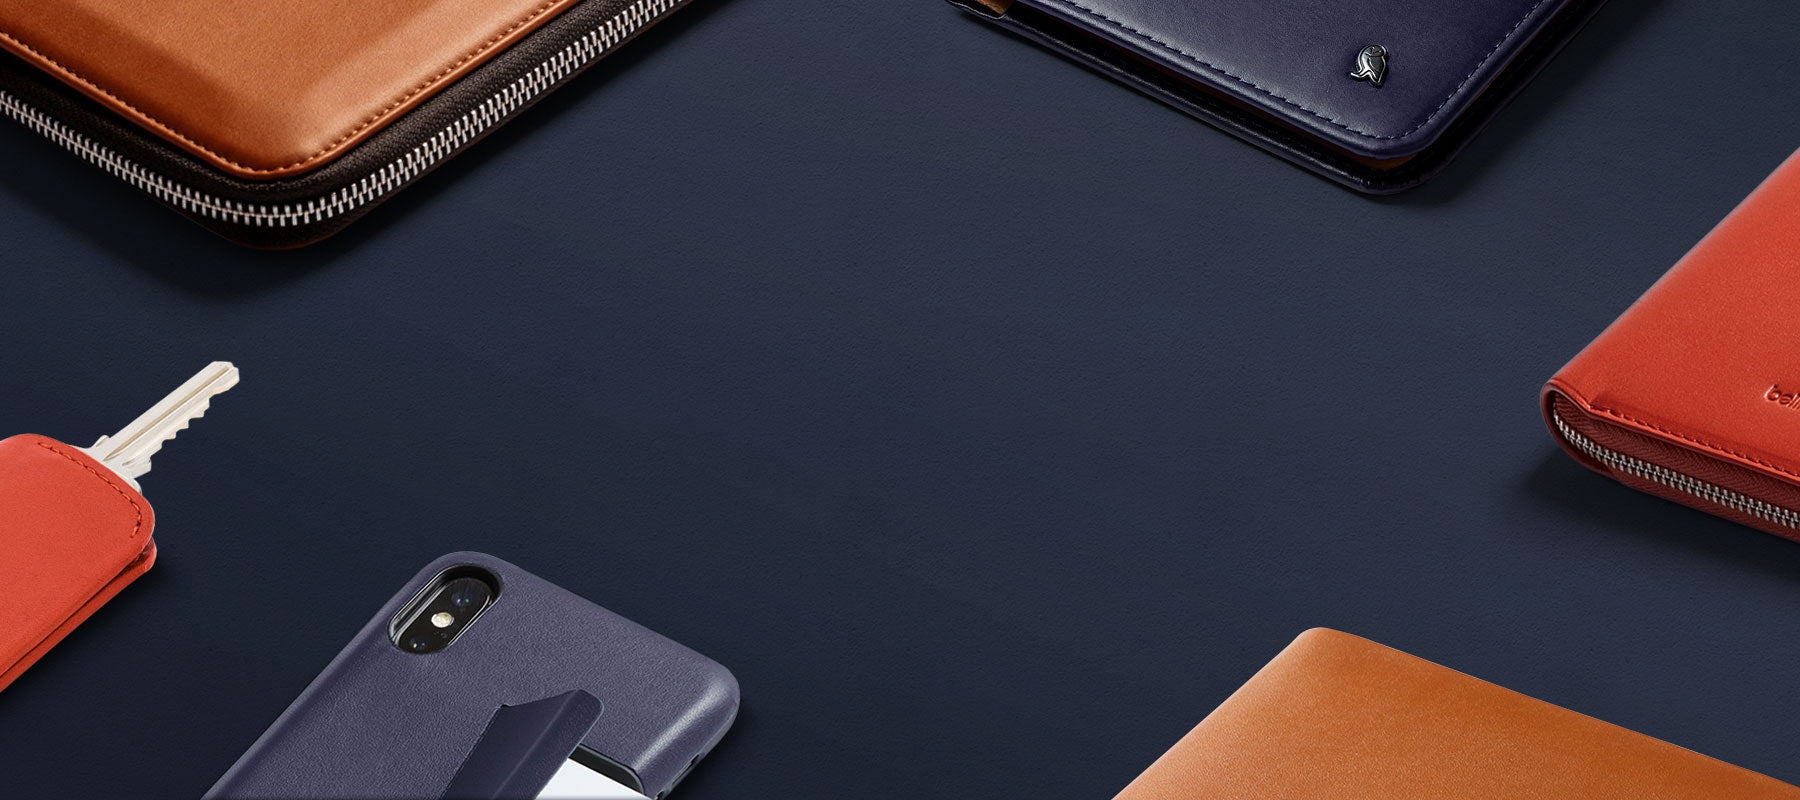 Bellroy - Designer Slim Leather Wallets and Cases for iPhone